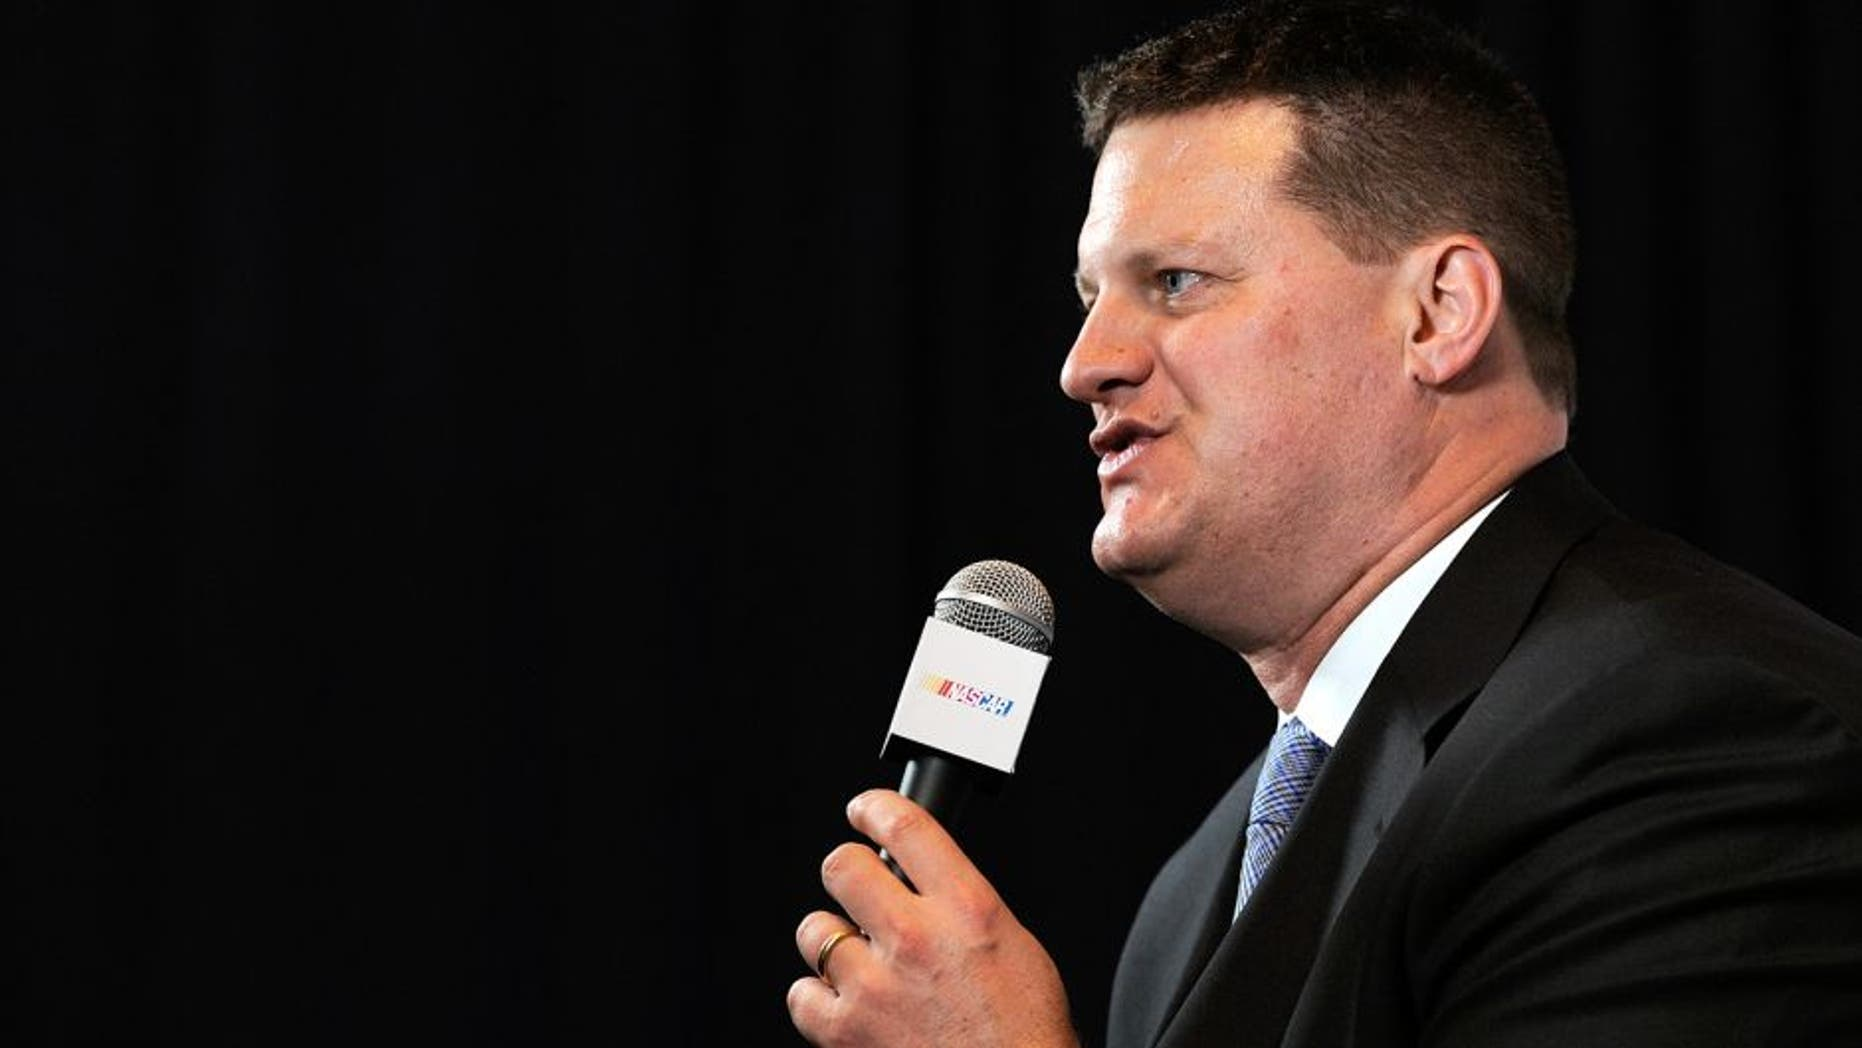 CHARLOTTE, NC - JANUARY 26: Steve O'Donnell, executive vice president & chief racing development officer for NASCAR, speaks with the media during the NASCAR Sprint Media Tour at the Charlotte Convention Center on January 26, 2015 in Charlotte, North Carolina. (Photo by Jared C. Tilton/NASCAR via Getty Images)